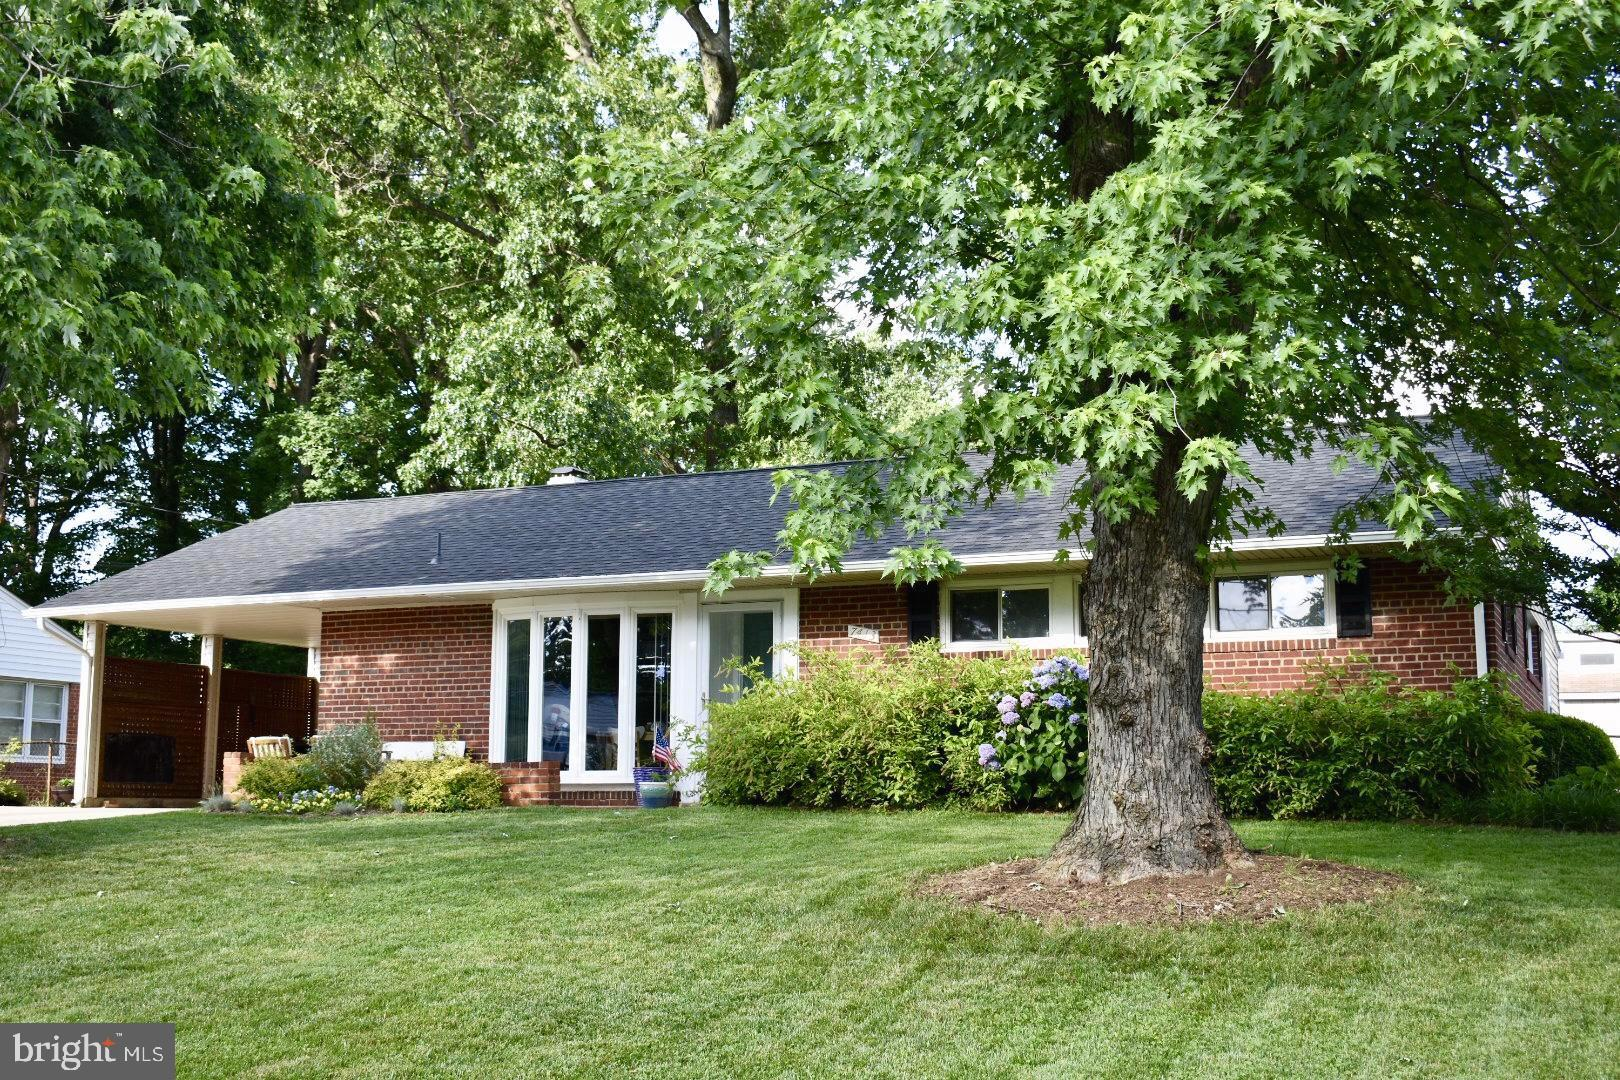 Charming rambler painstakingly updated for ease of living! Full kitchen remodel opening to family room w/custom solid maple cabinets, added peninsula, SS appliances, and tiled back splash make this home perfect for your family.  No maintenance Pergo flooring a must for your busy lifestyle. New roof, carpet, paint, vanities, and hot water heater are just a few updates.  Add an easy commute and close proximity to Lake Accotink Park and Crestwood Elementary School and this home sits exactly where you need to be to maximize your home and family time. Home Warranty offered,  All offers due by noon 6/25 after open house.